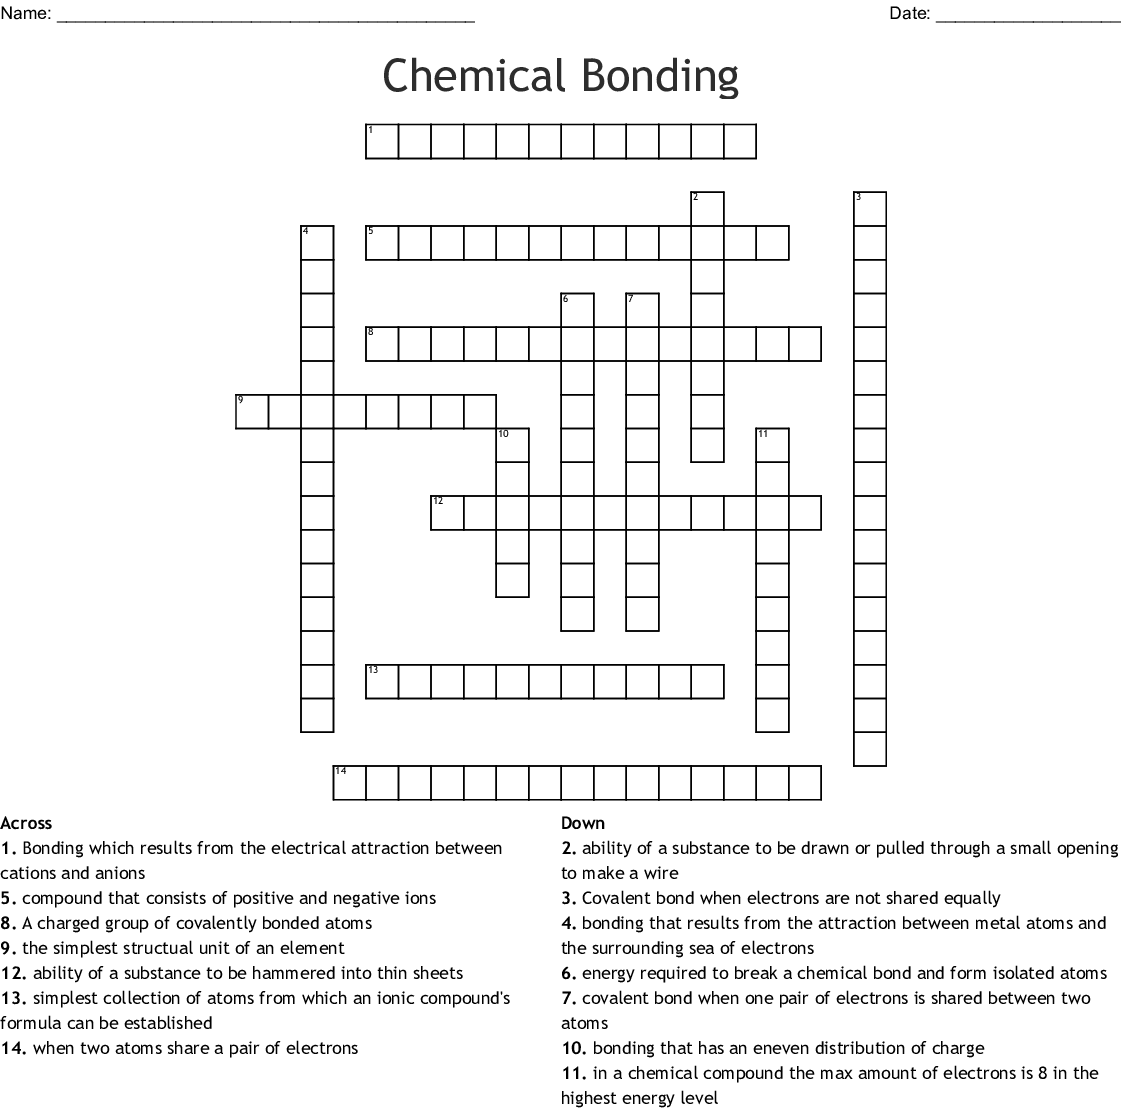 Chemical Bonding Crossword